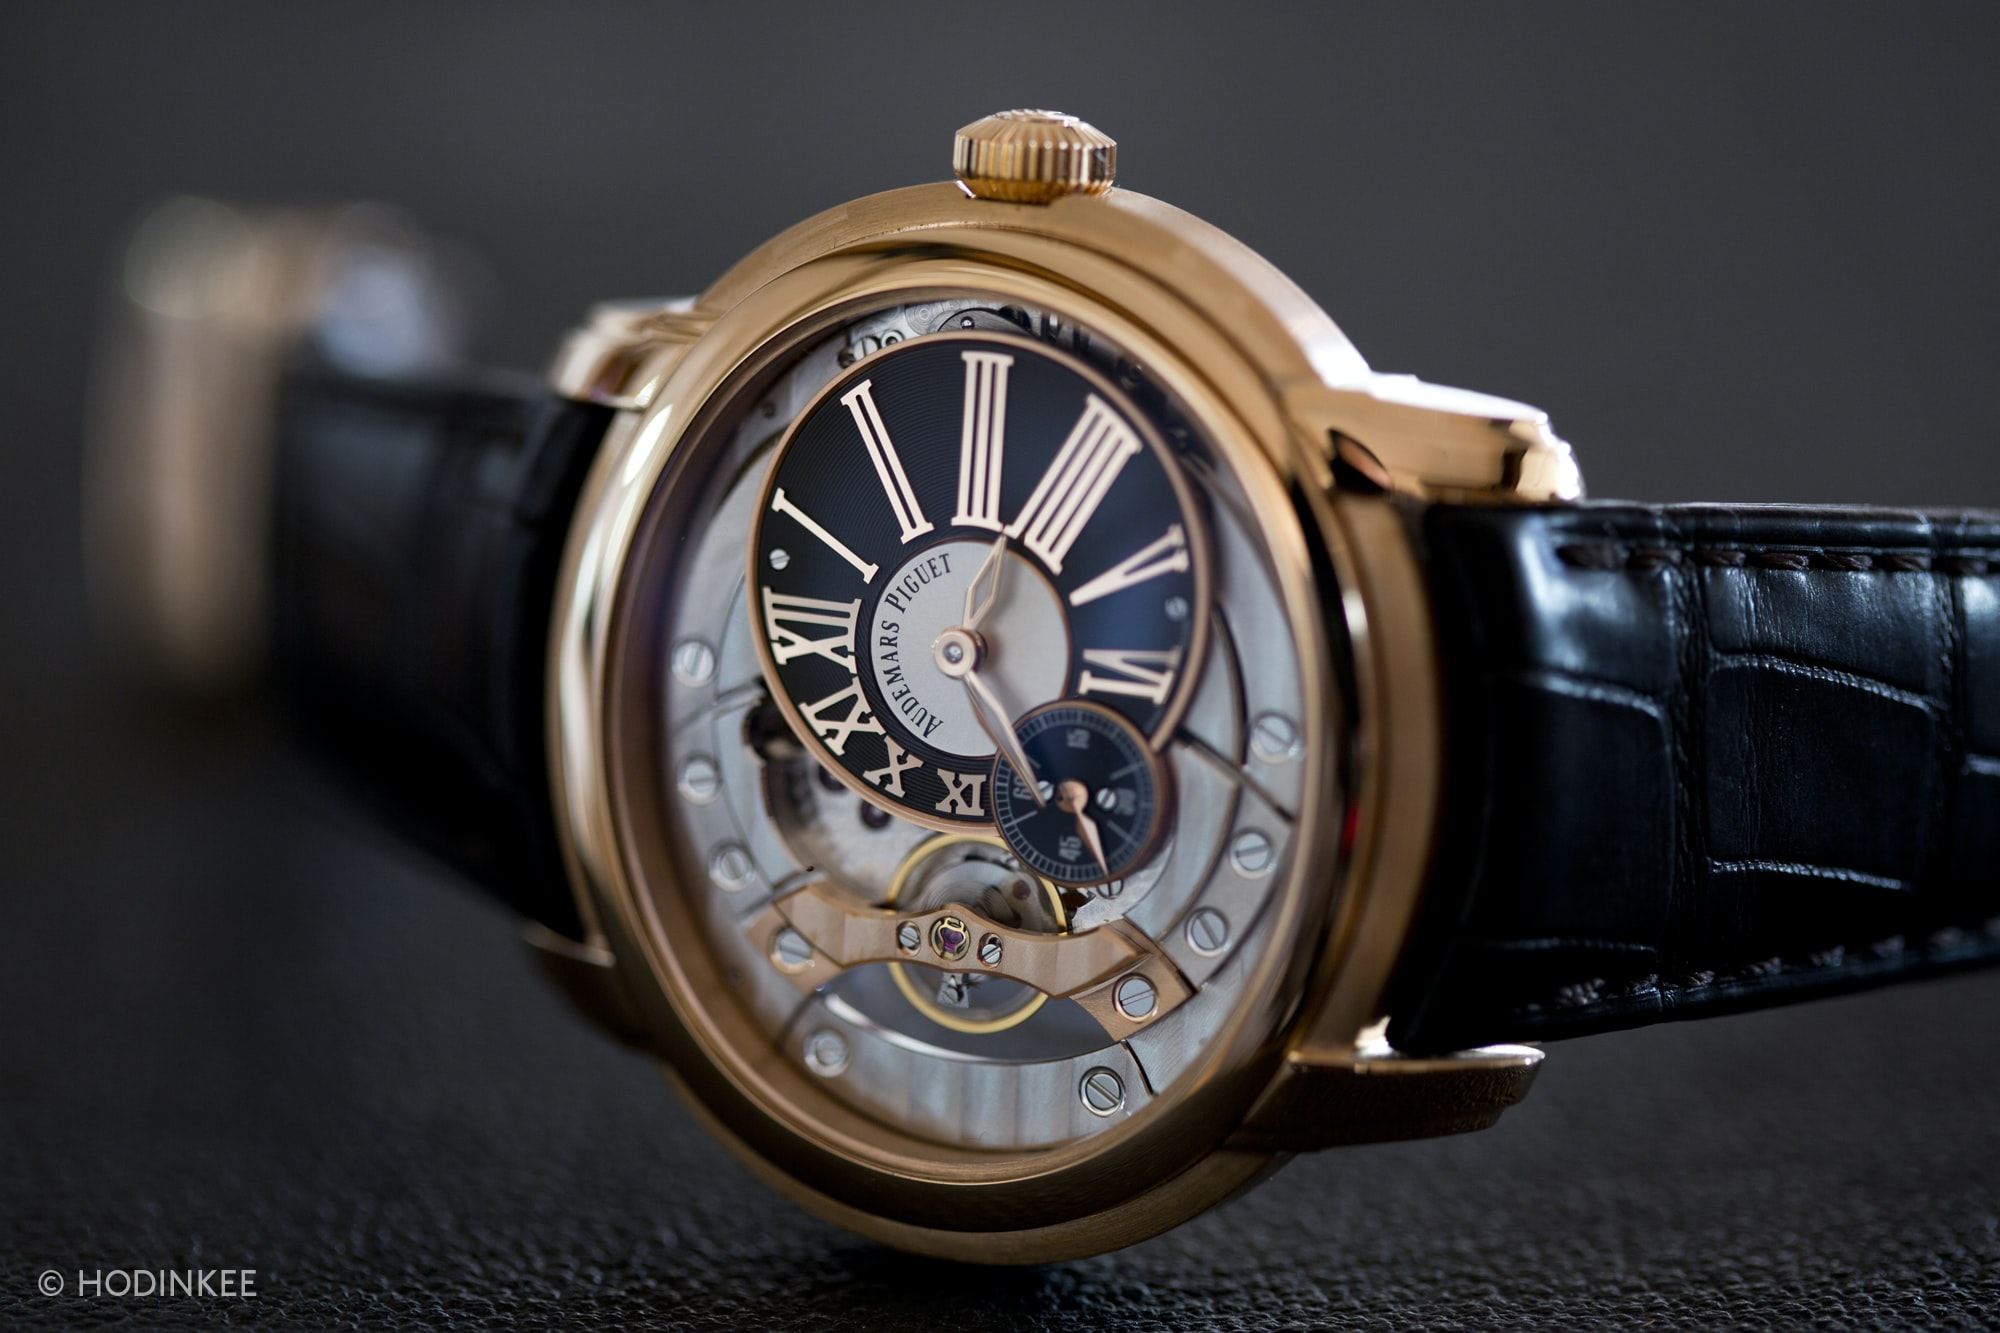 Hands-On: The Audemars Piguet Millenary Openworked, A Spectacular Design Counterpoint To The Royal Oak Hands-On: The Audemars Piguet Millenary Openworked, A Spectacular Design Counterpoint To The Royal Oak 2ba15efd48b3fc4023f01bb60ba87a6c ixlib rails 0